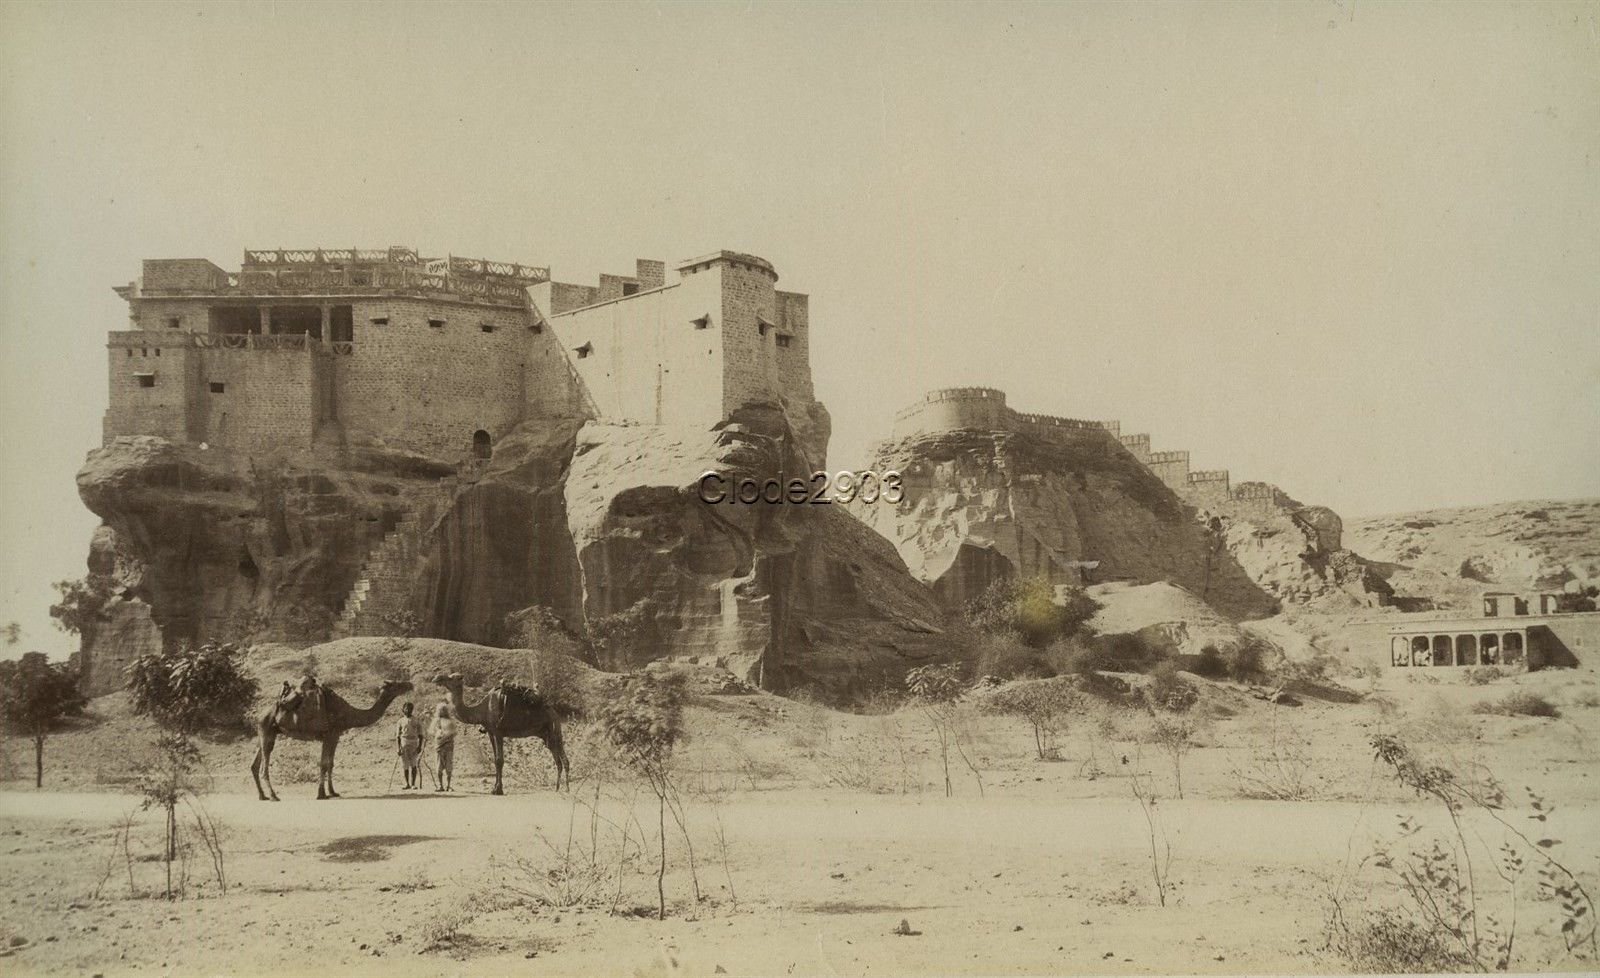 Building on Top of a Large Rock - c1870's